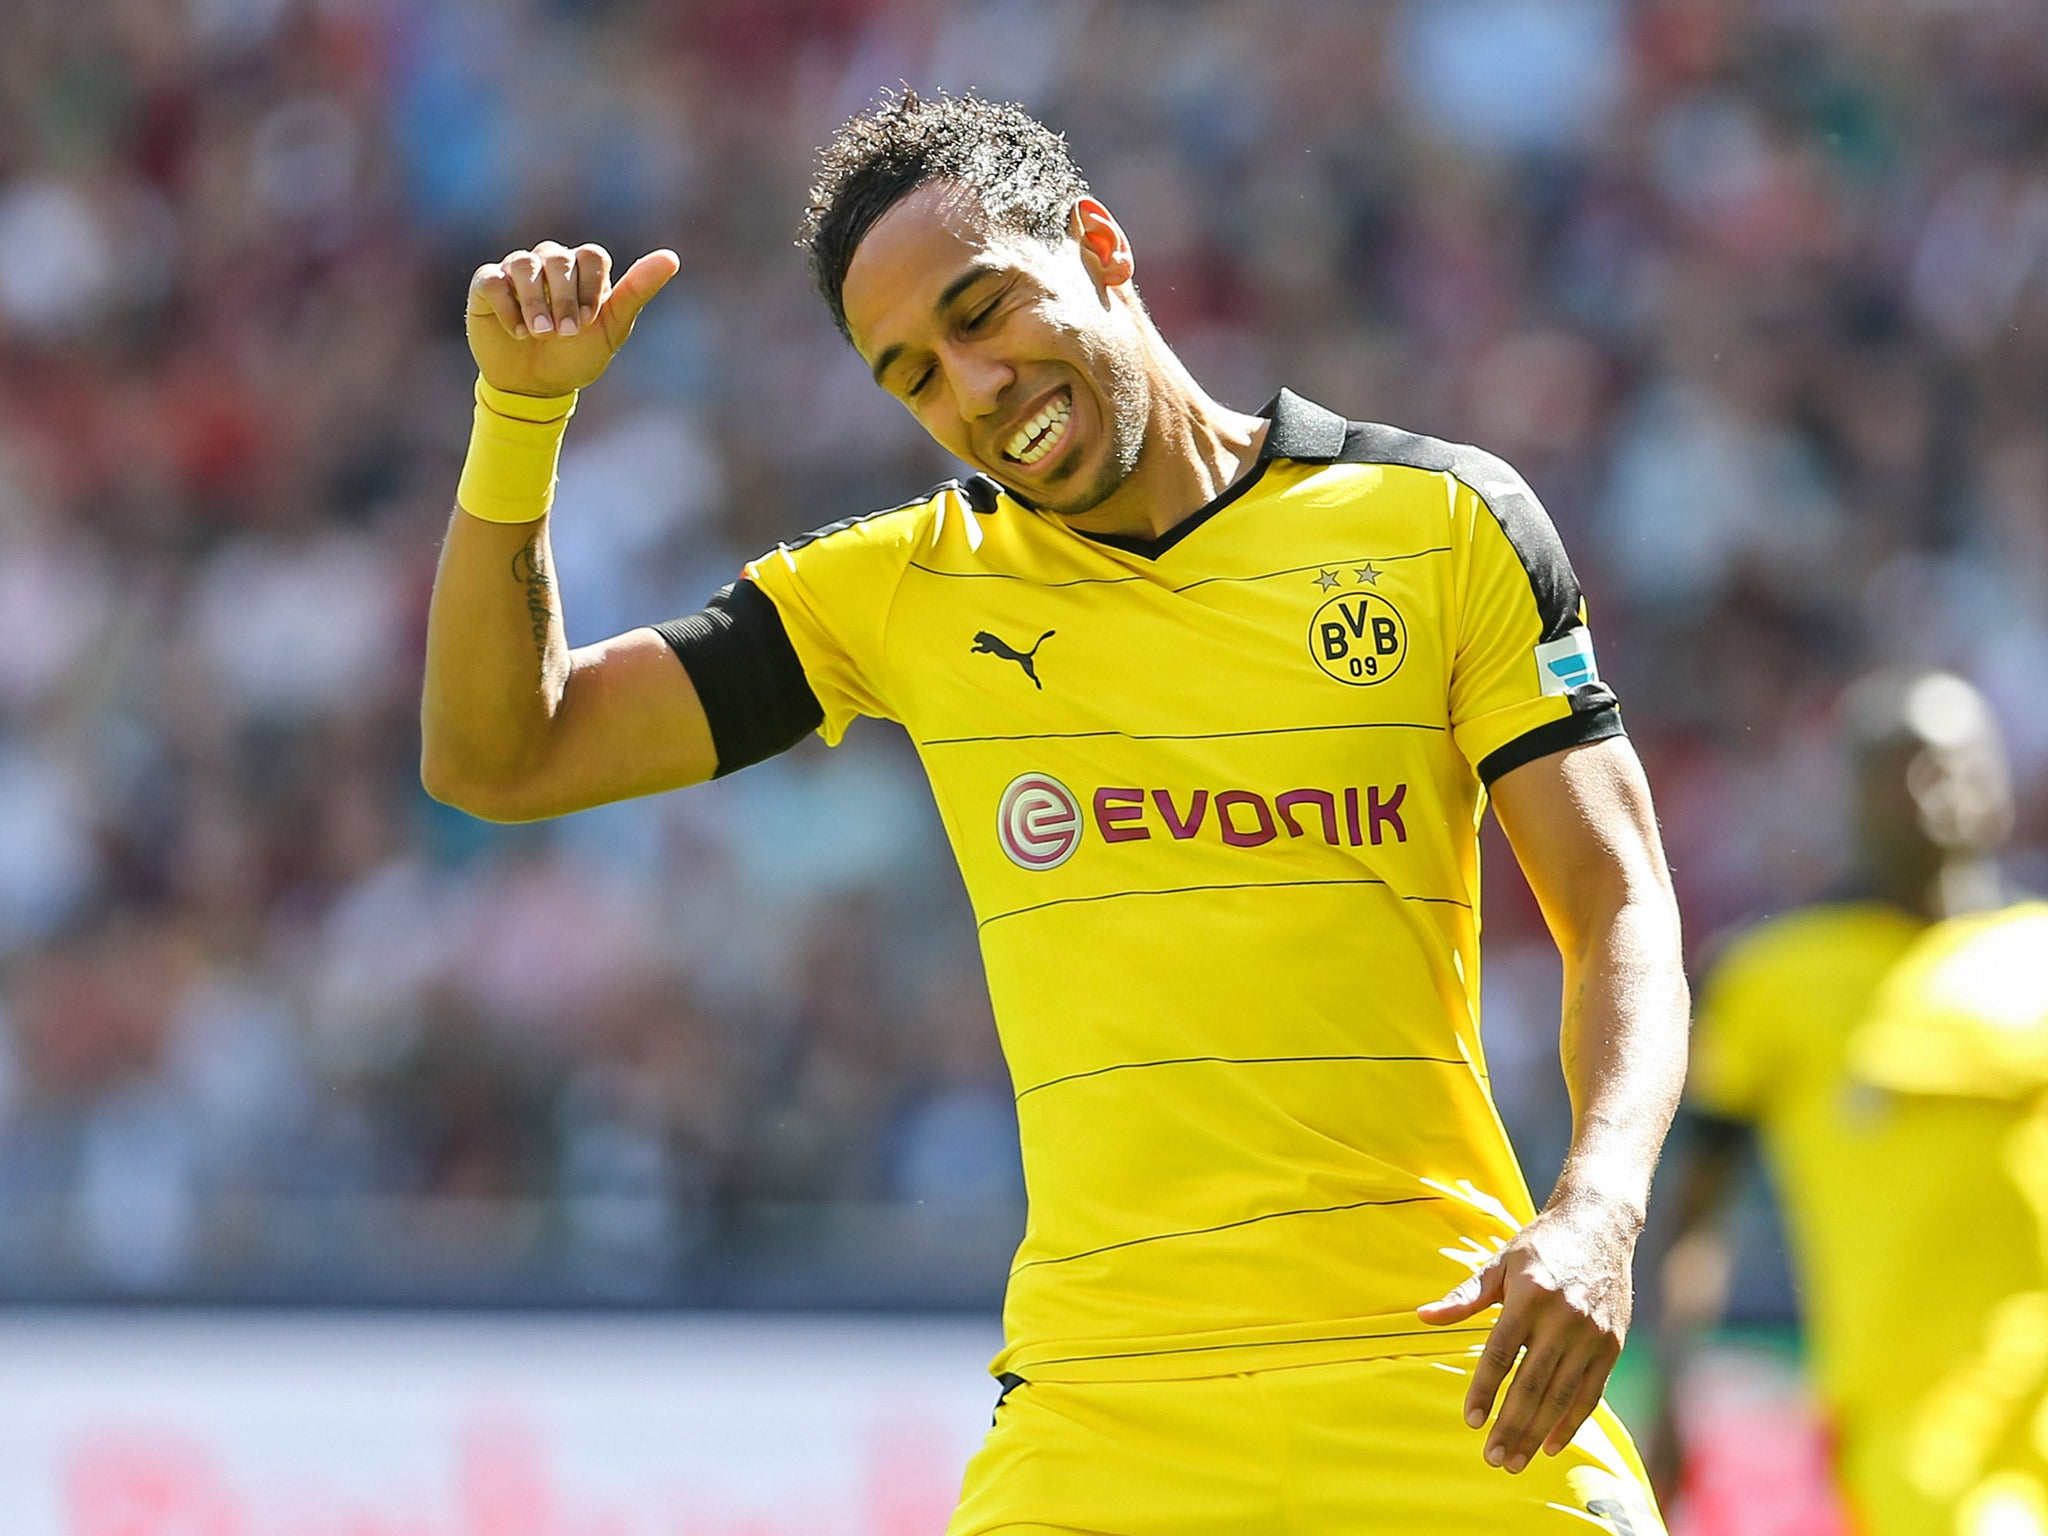 Pierre Emerick Aubameyang to Arsenal Gabon team mate Daniel